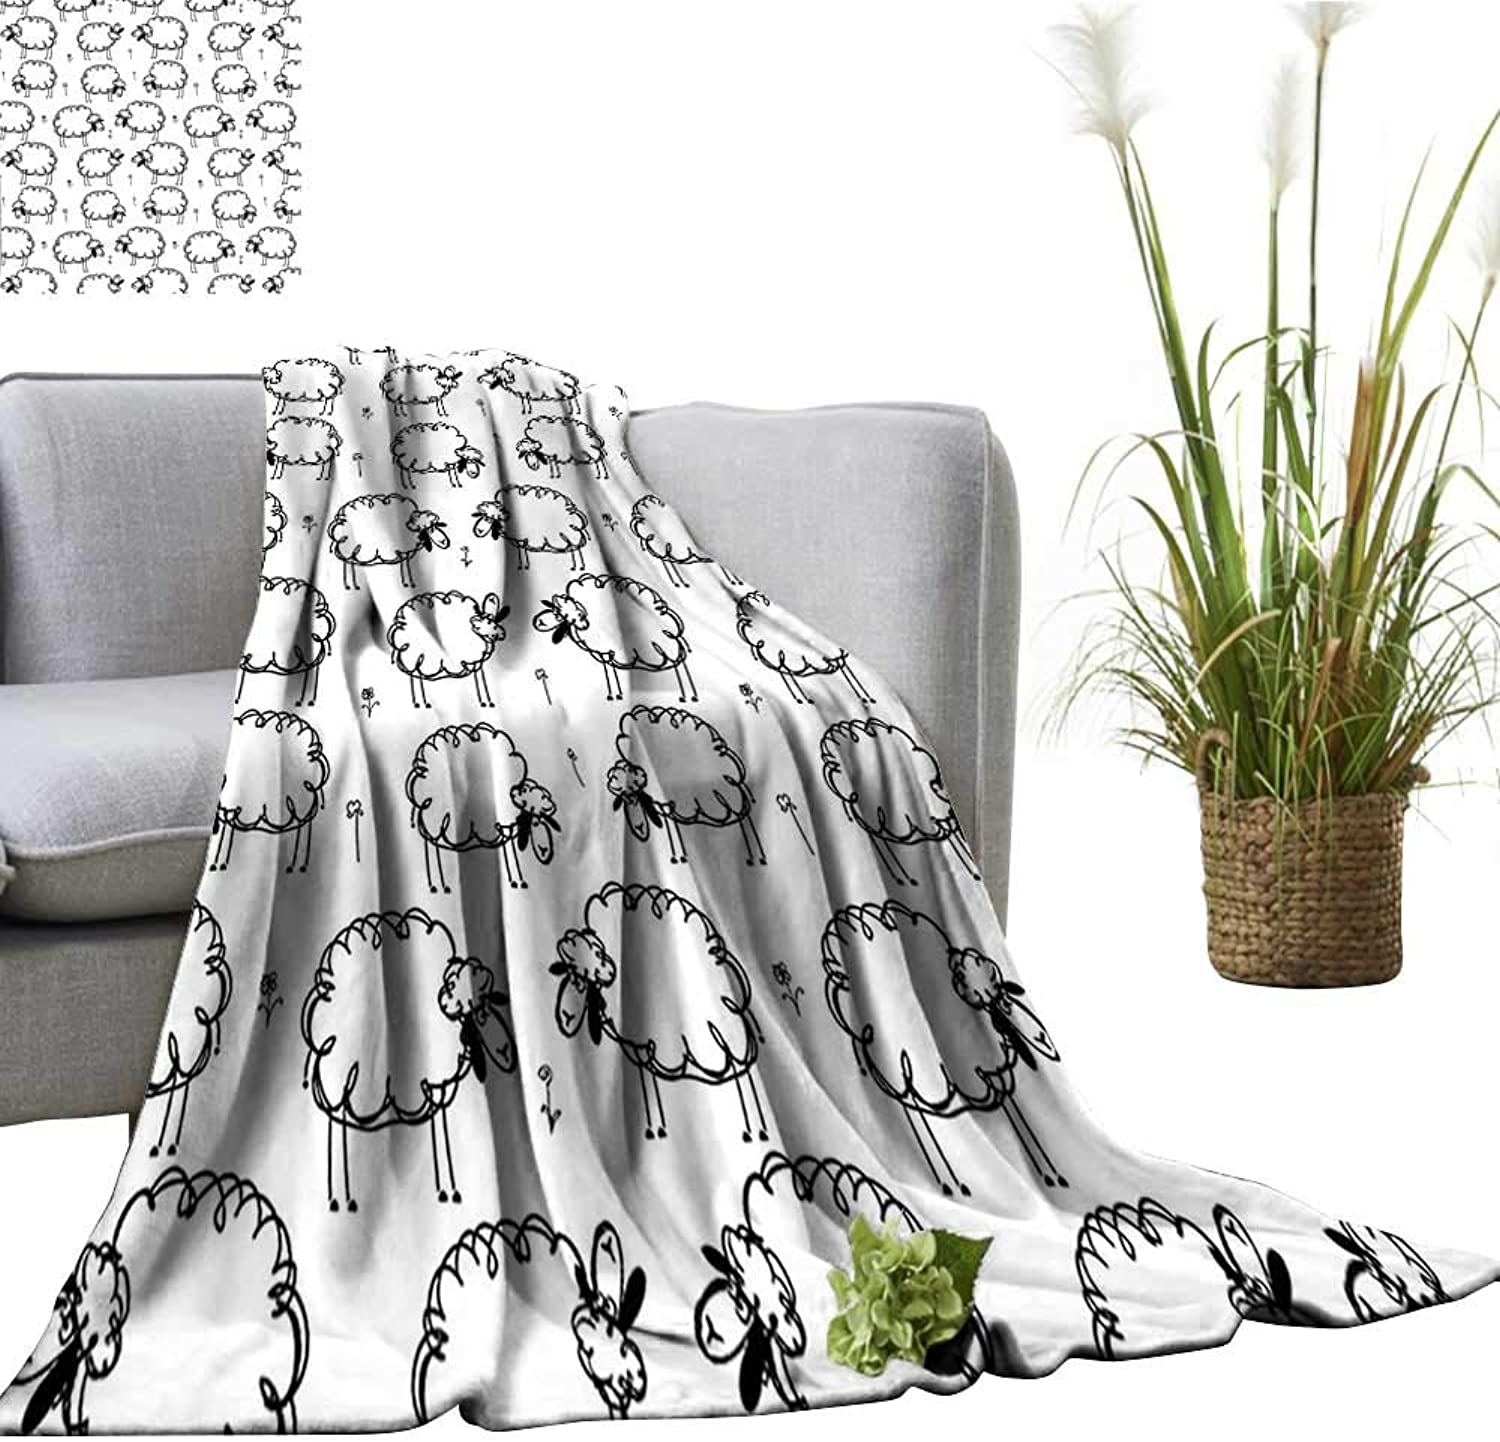 YOYI Single-Sided blanketPatterns On Meadow with Flower Comic Doodle Playroom Kids Art Print Balck for Bed & Couch Sofa Easy Care 60 x63